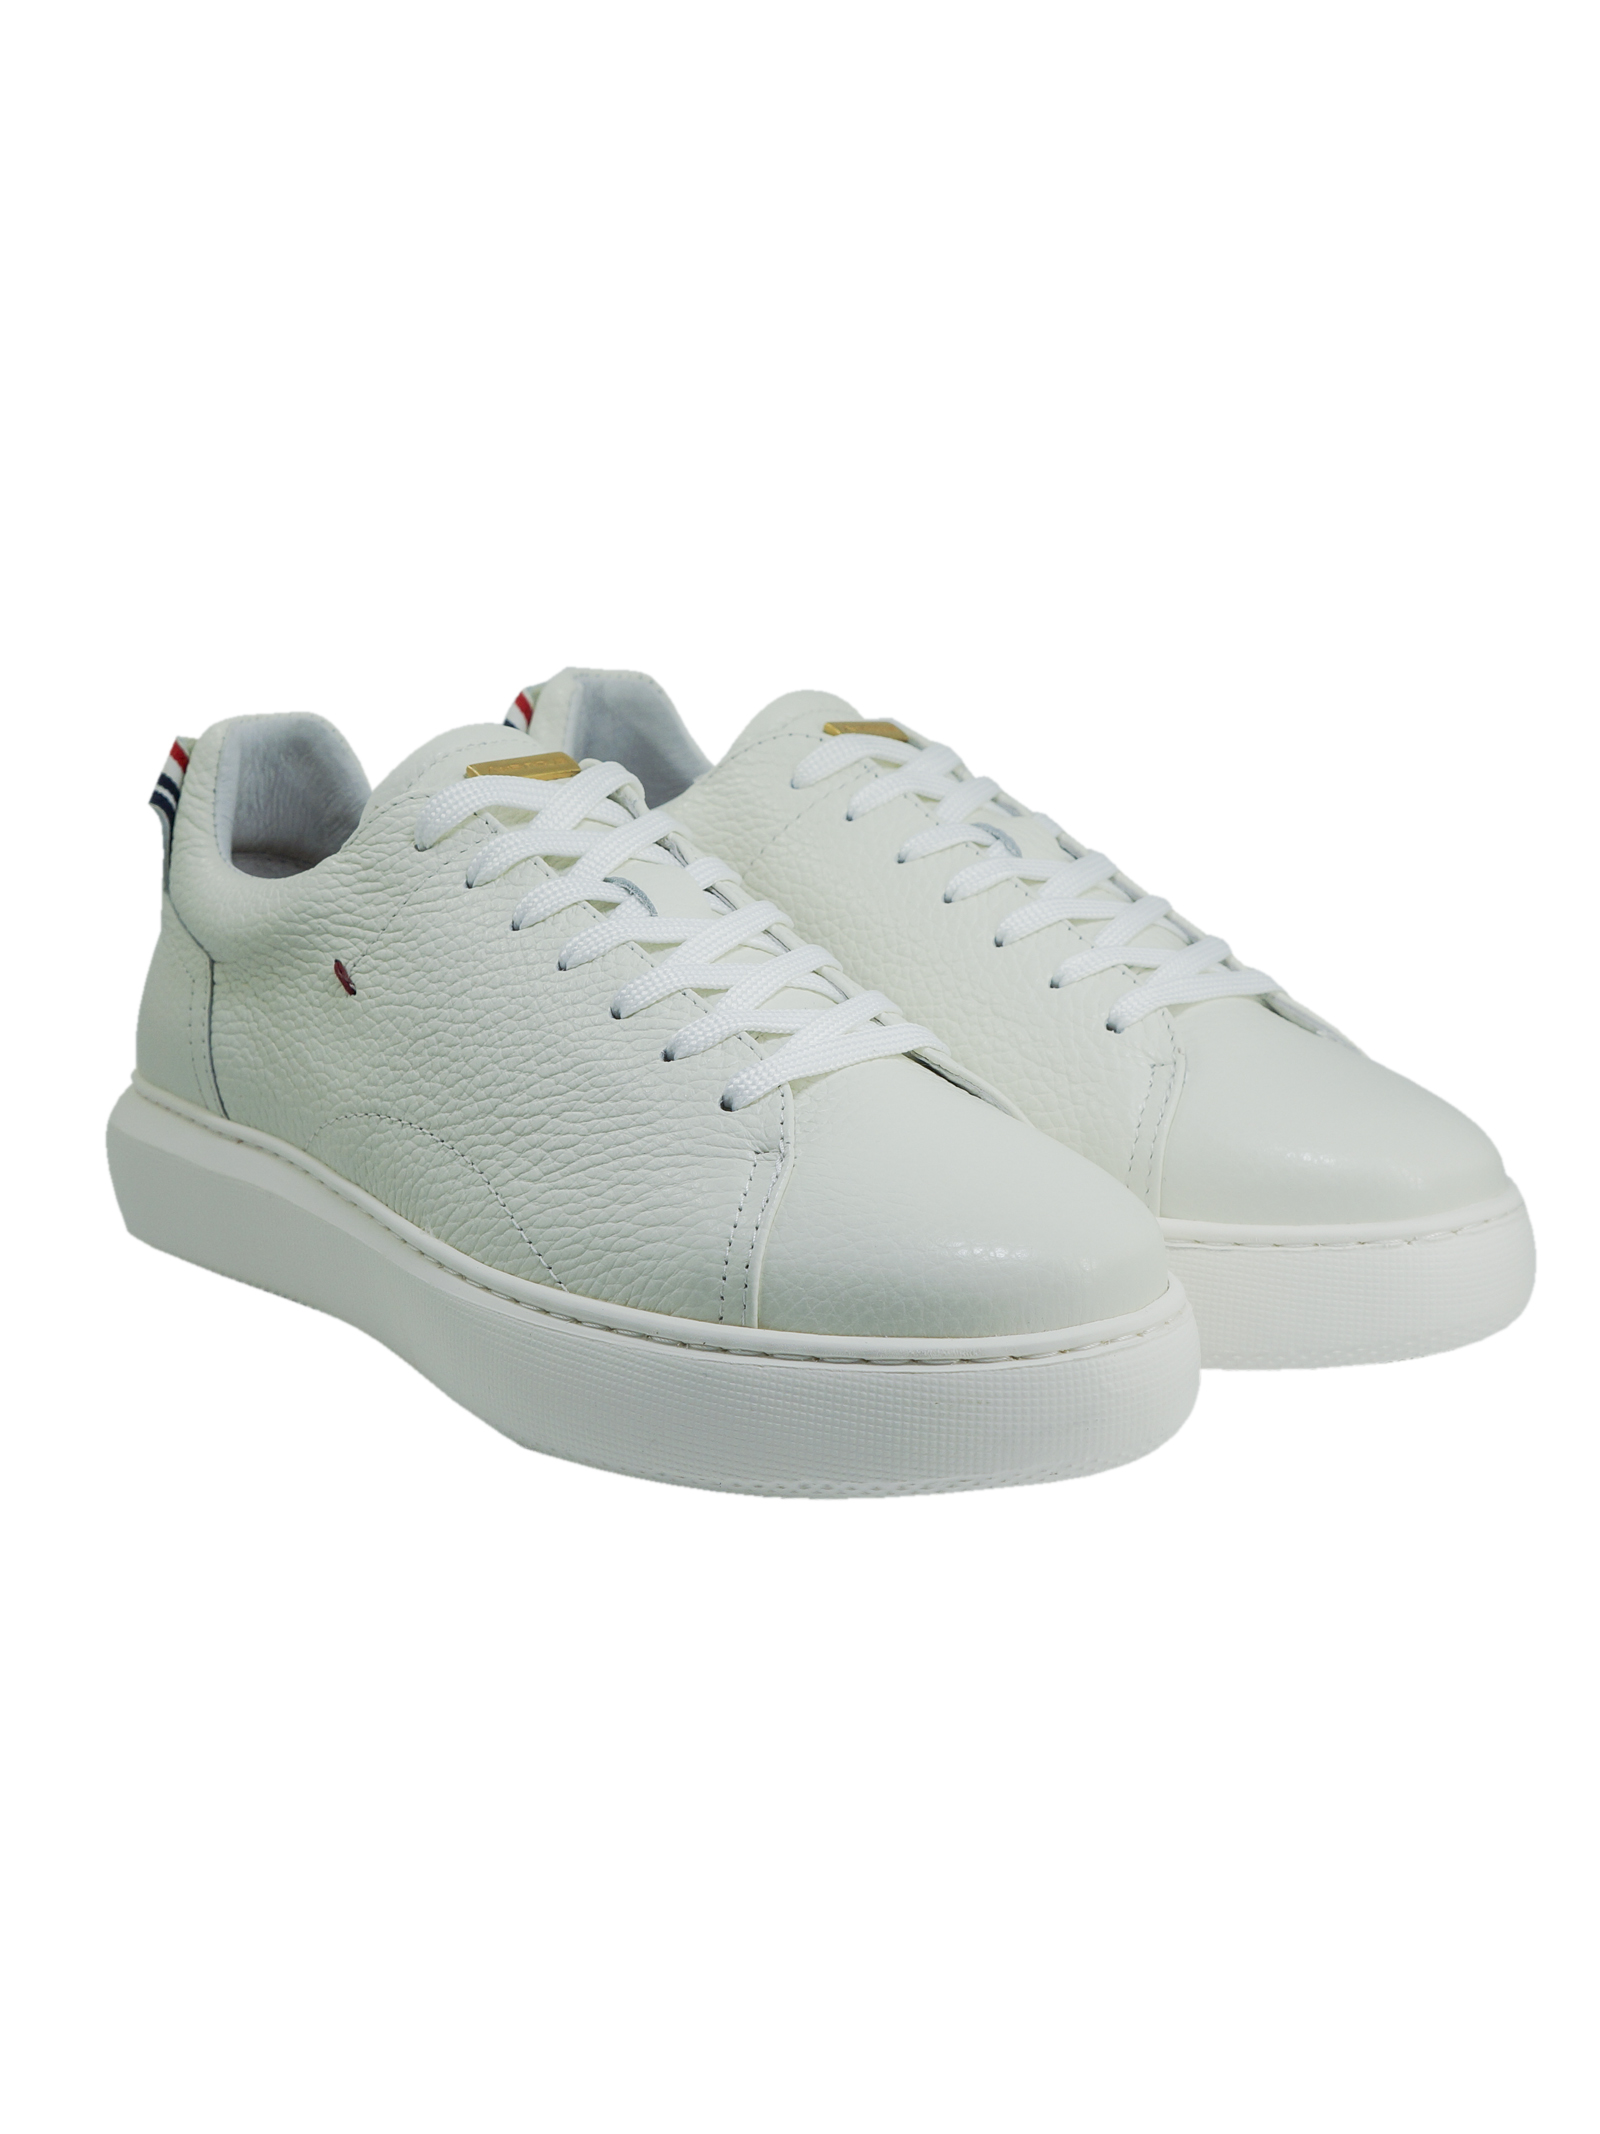 Sneakers Uomo in Pelle Ambitious Ambitious | Sneakers | 10443WHITE